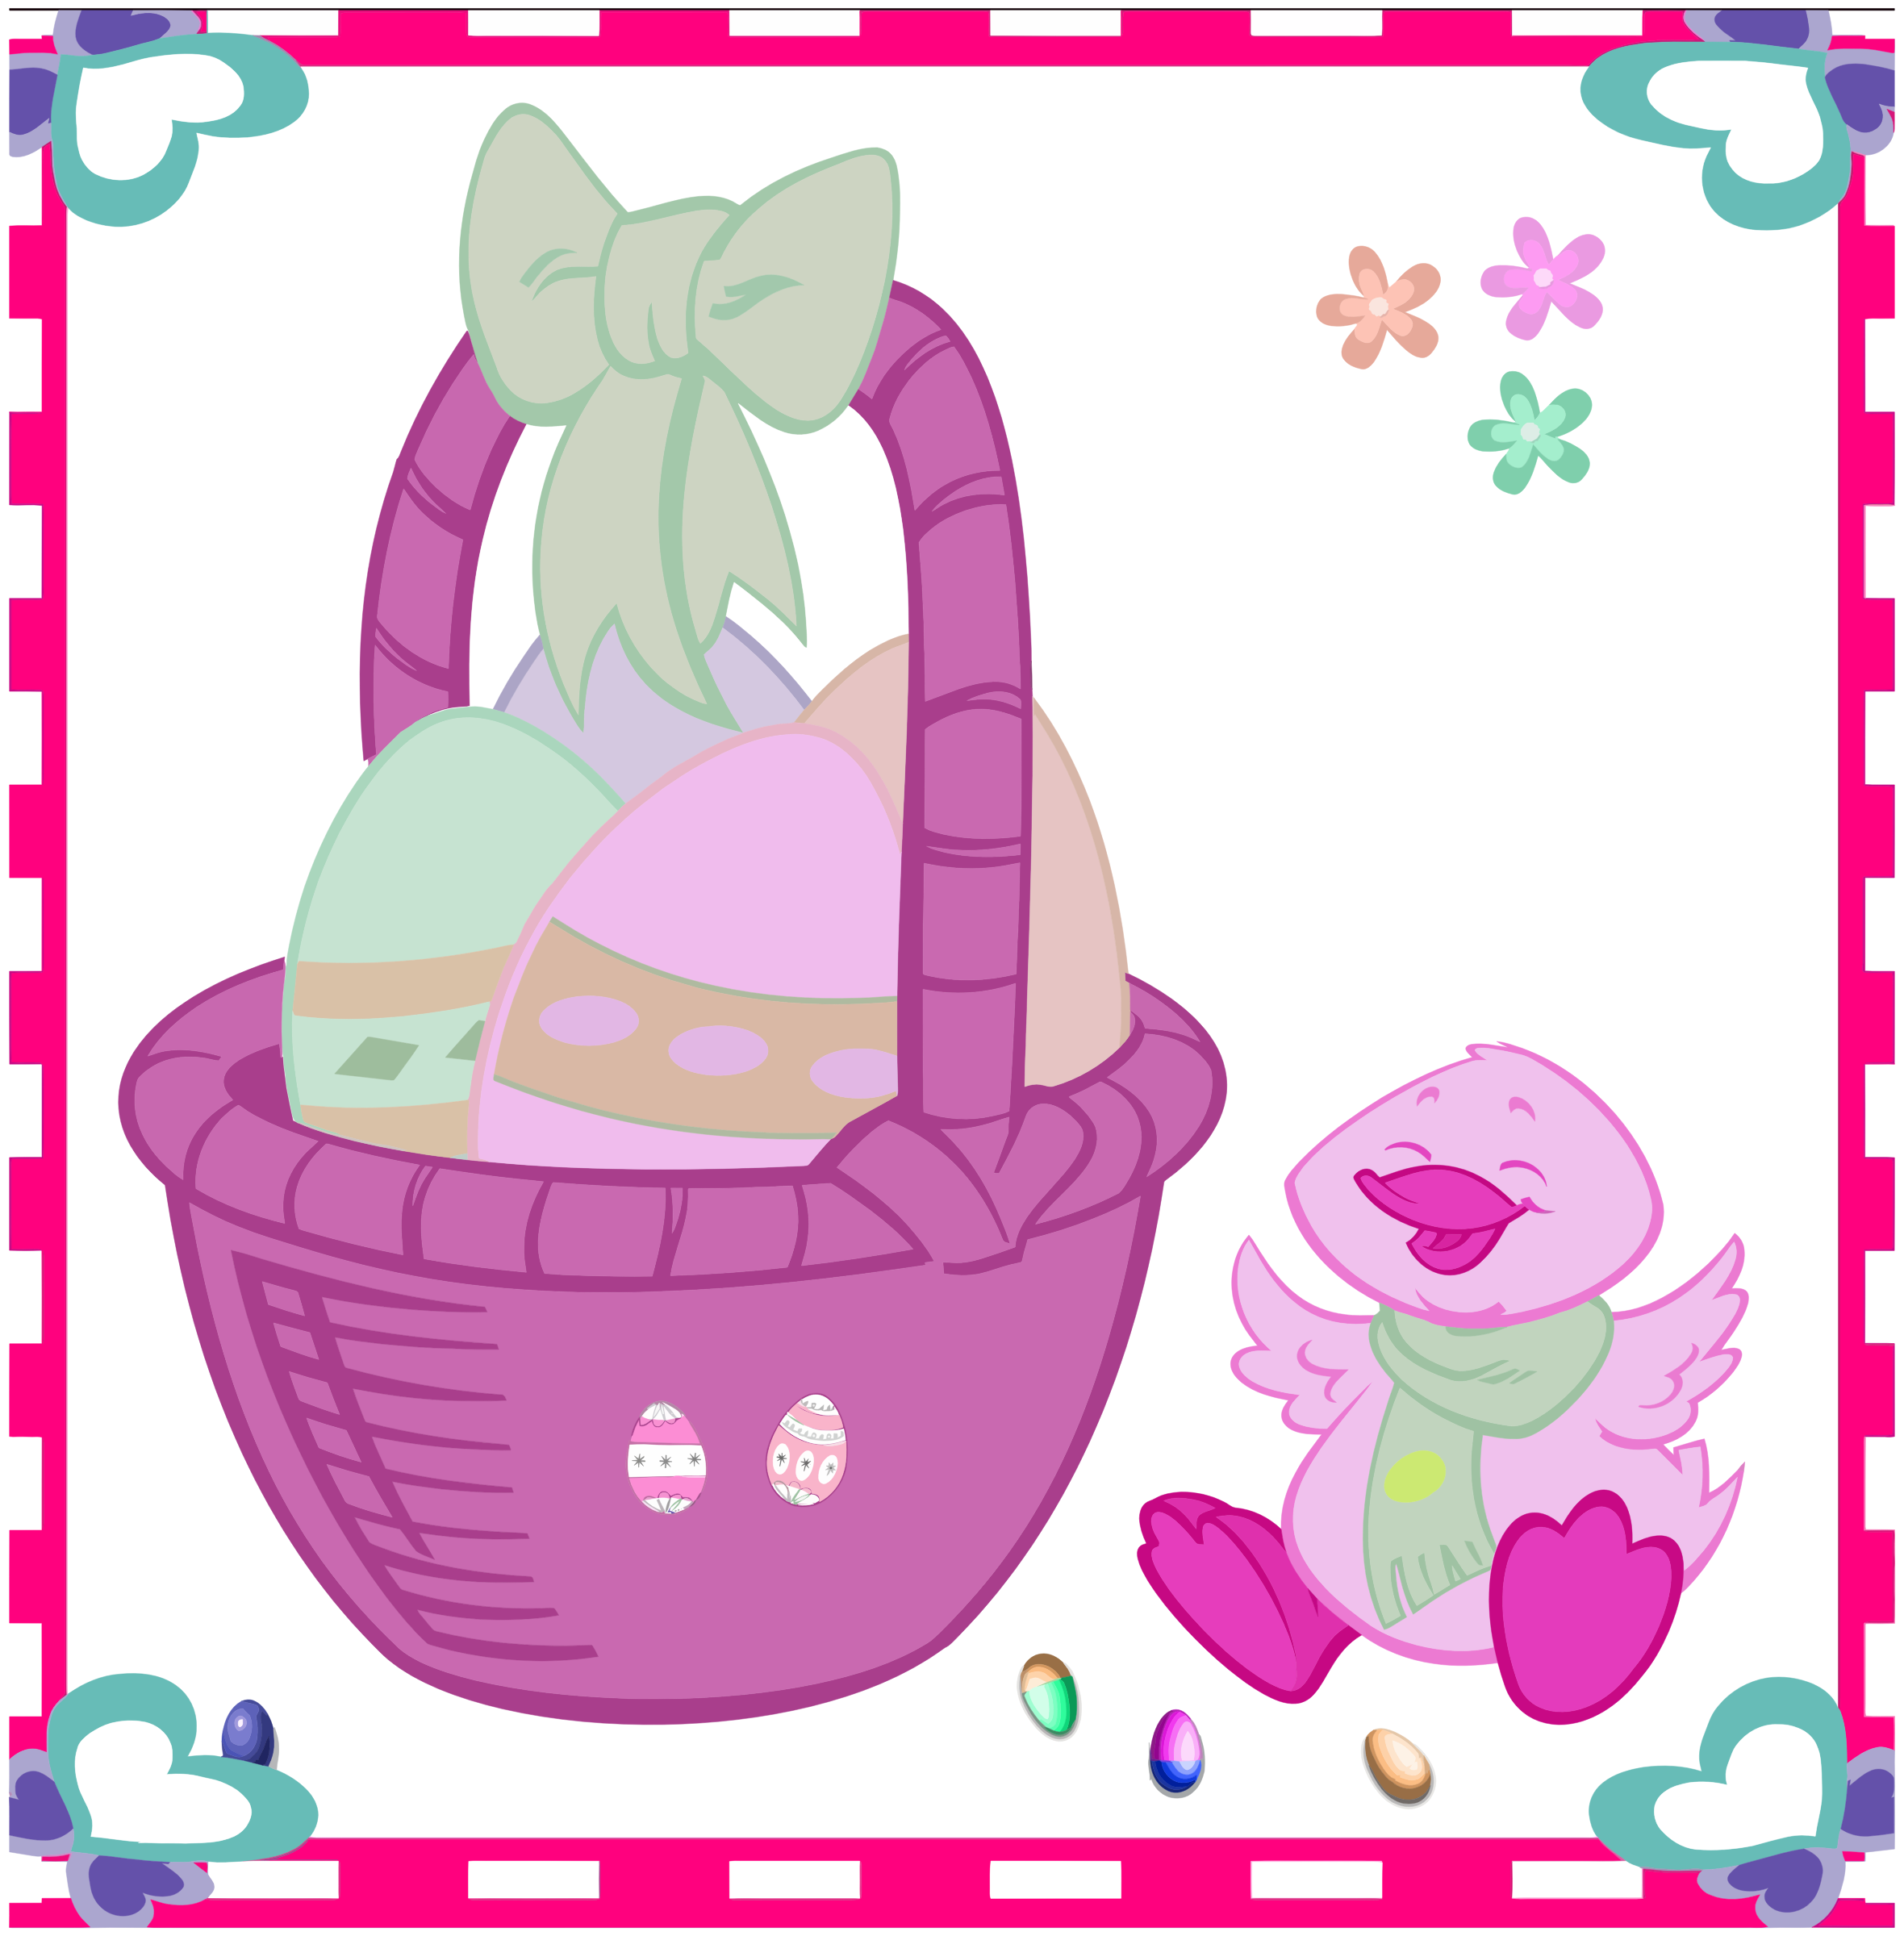 Easter Egg Basket And Duckling 2 by GDJ